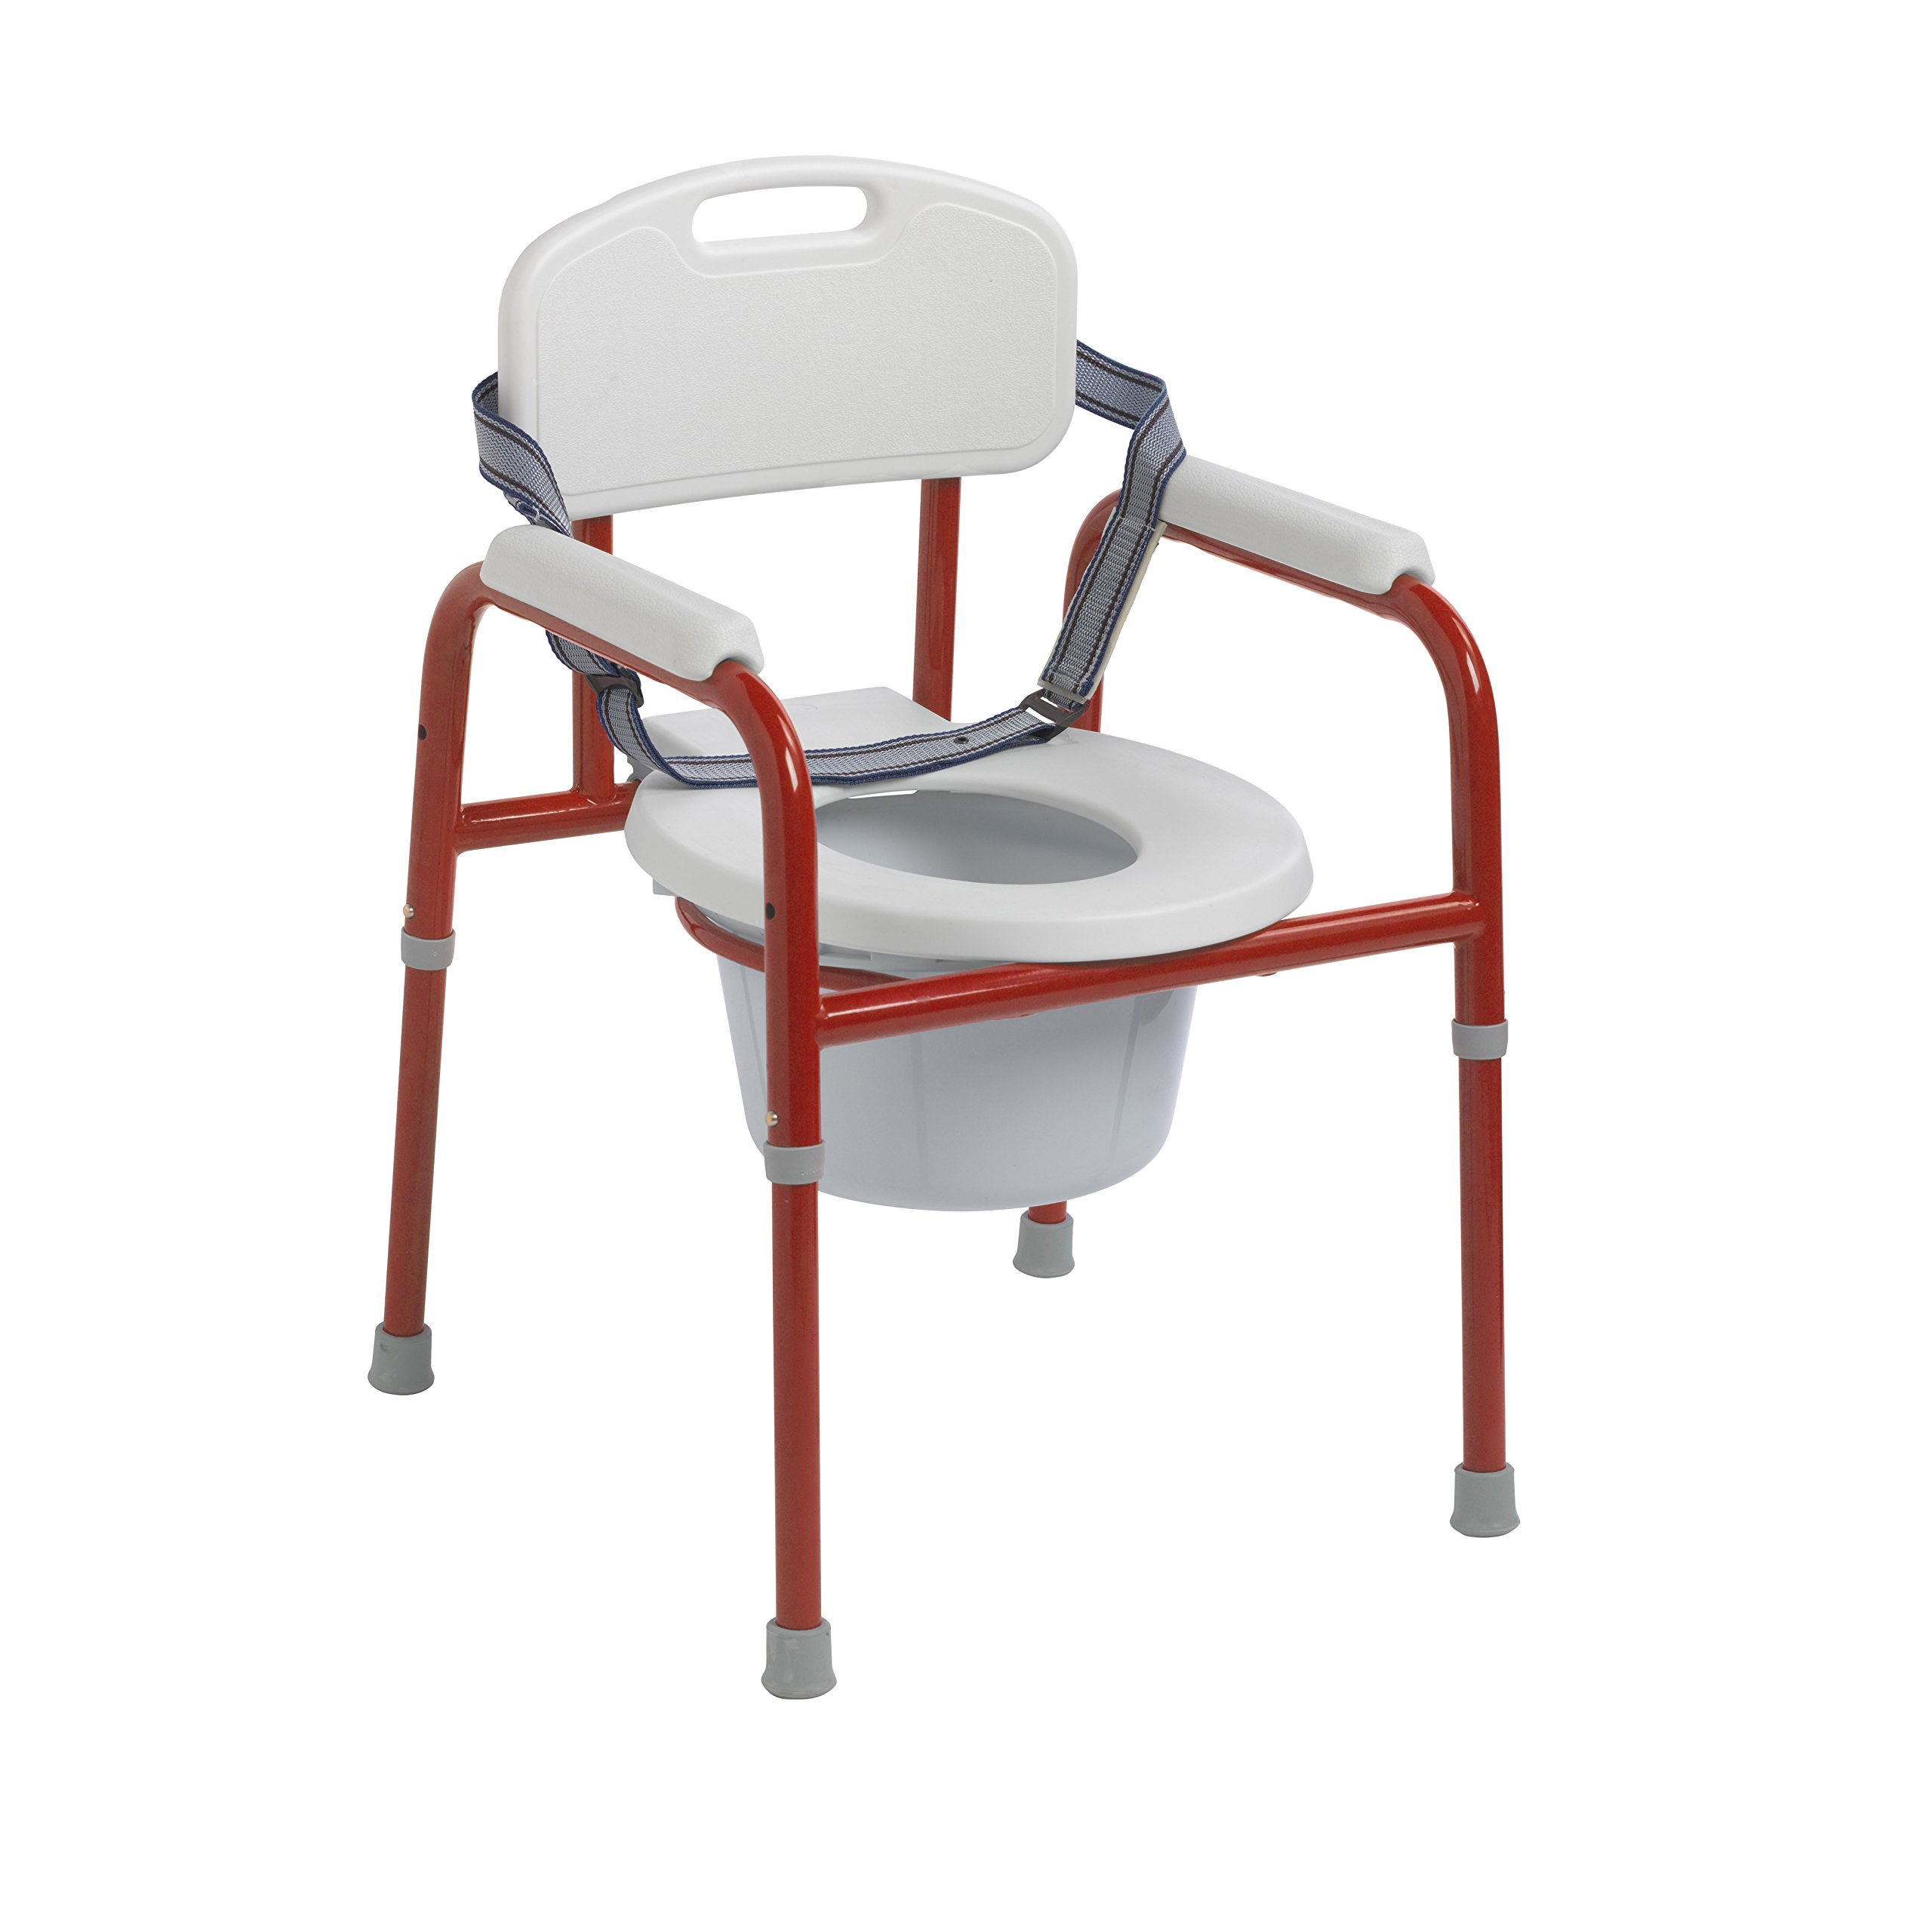 Wenzelite Drive Medical Pinniped Pediatric Commode, Red